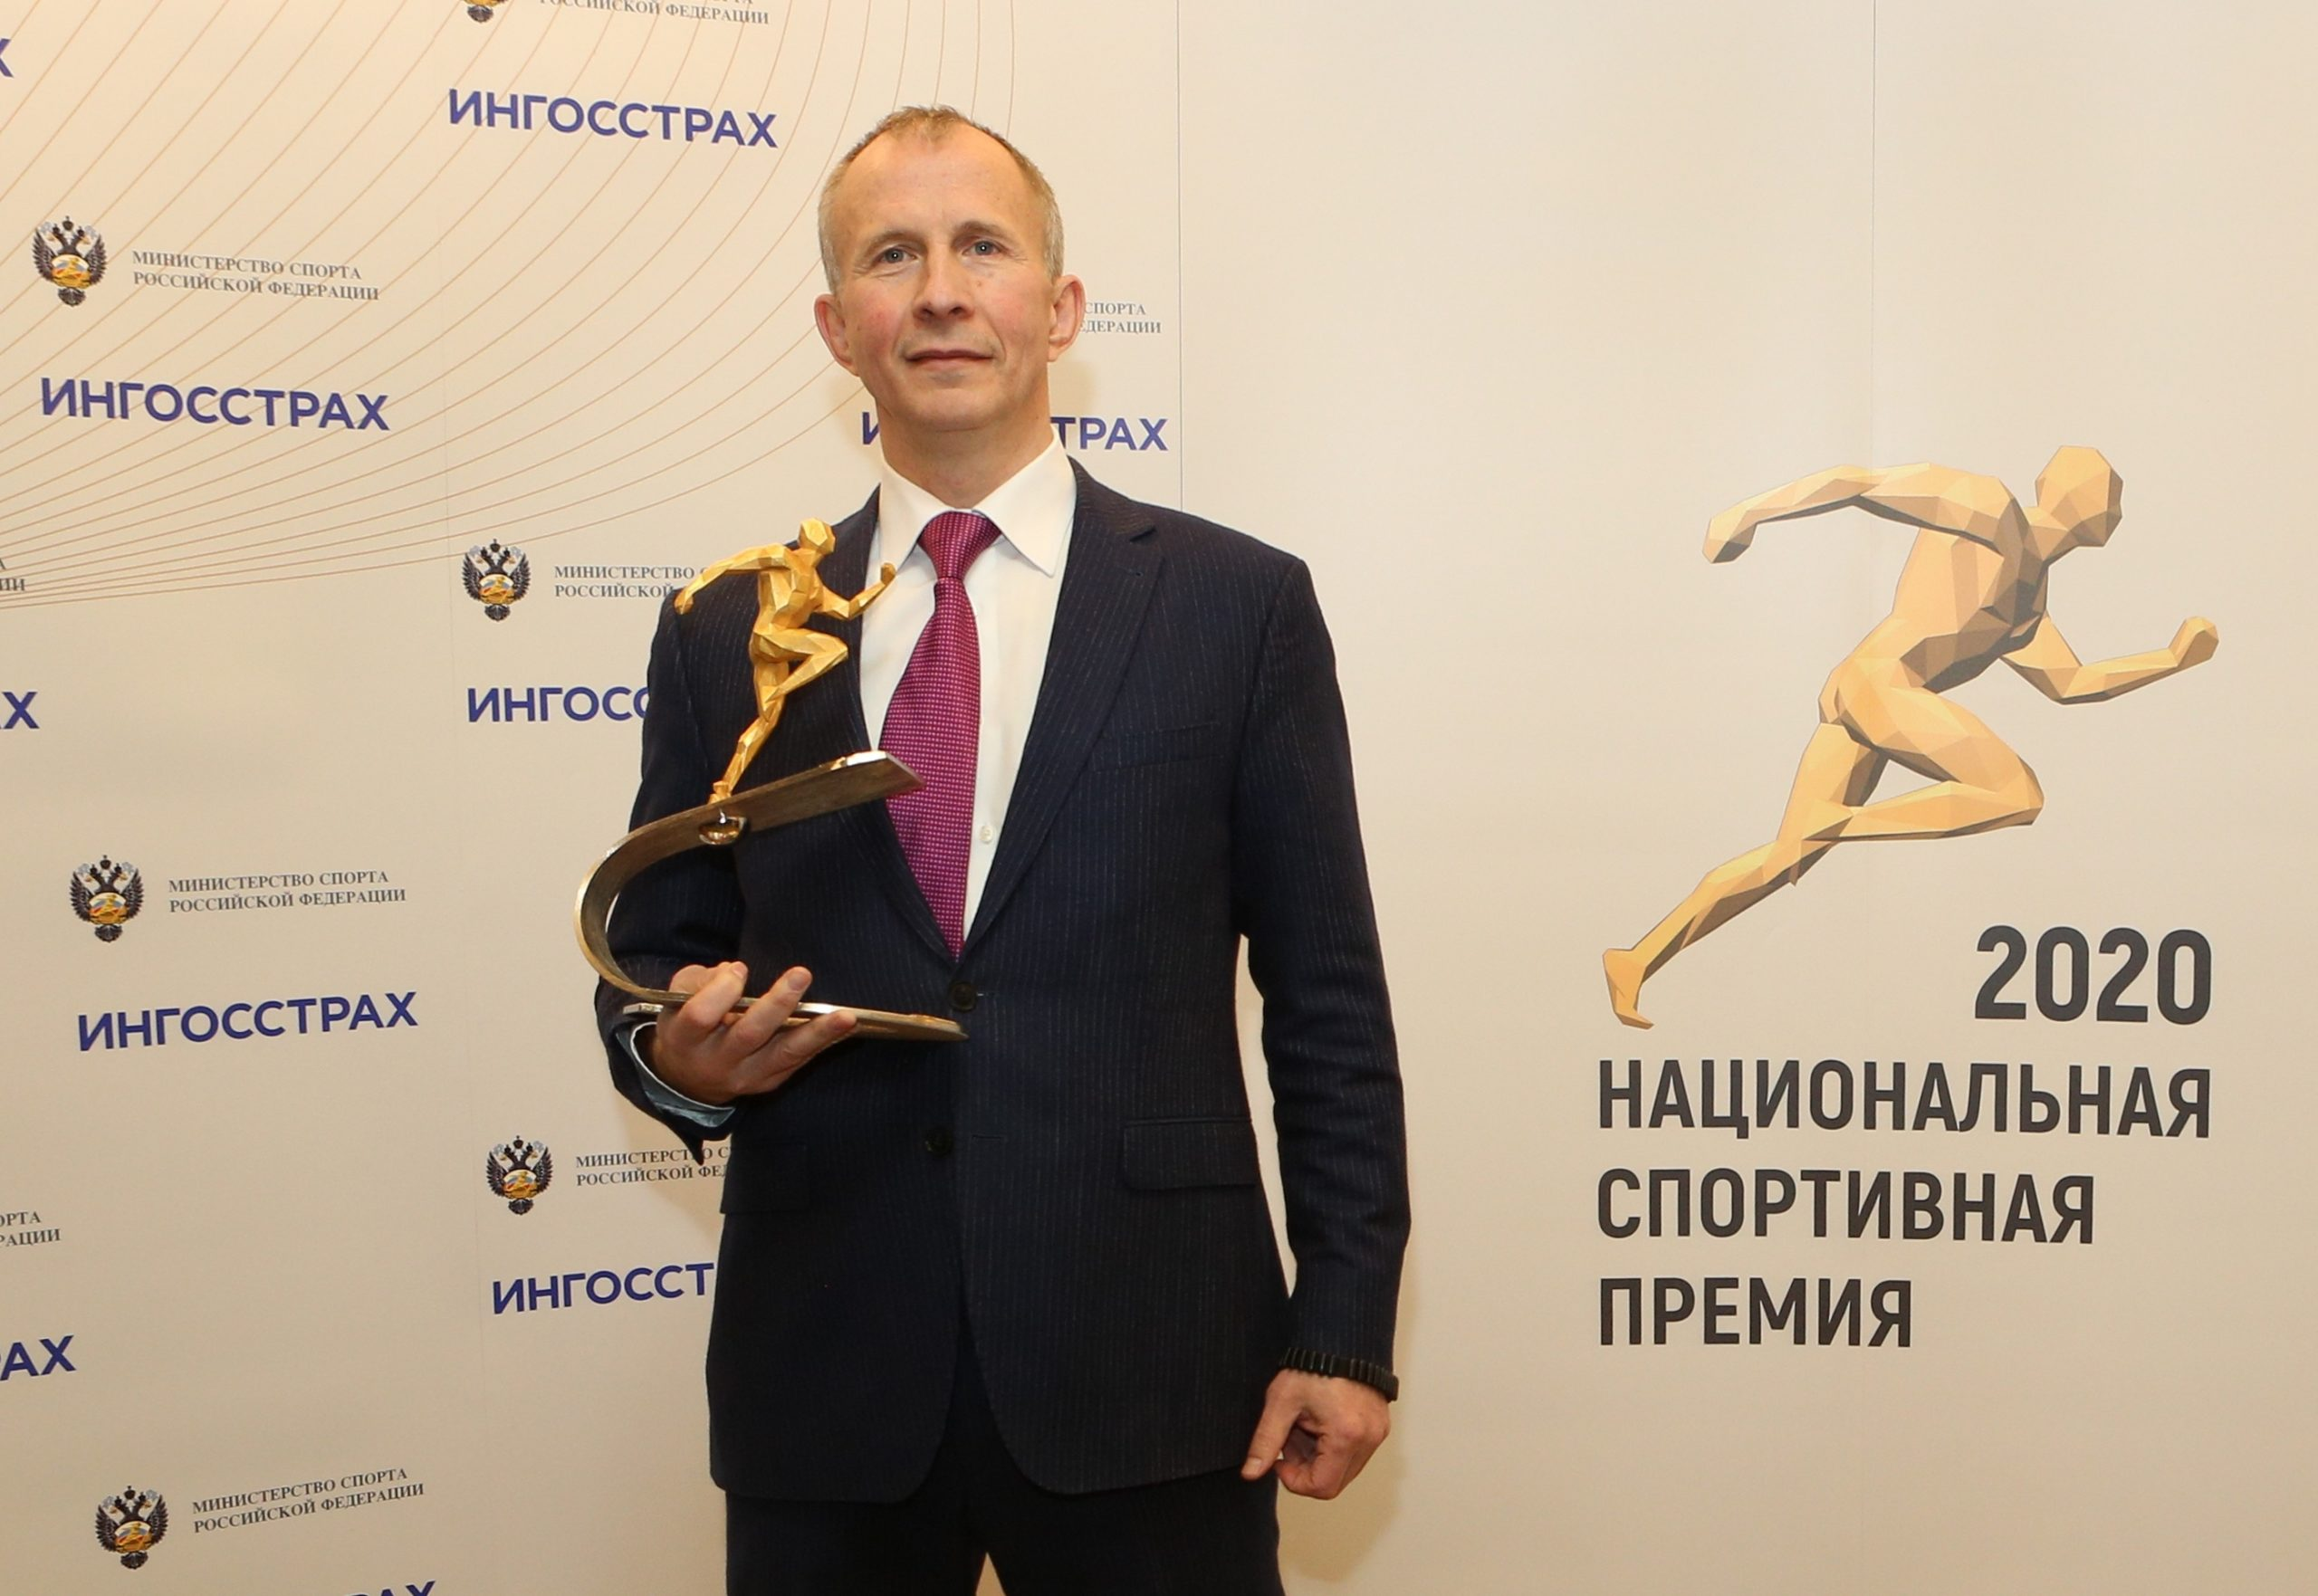 SERGEY SOLOVEYCHIK IS A LAUREATE OF THE NATIONAL SPORTS PRIZE